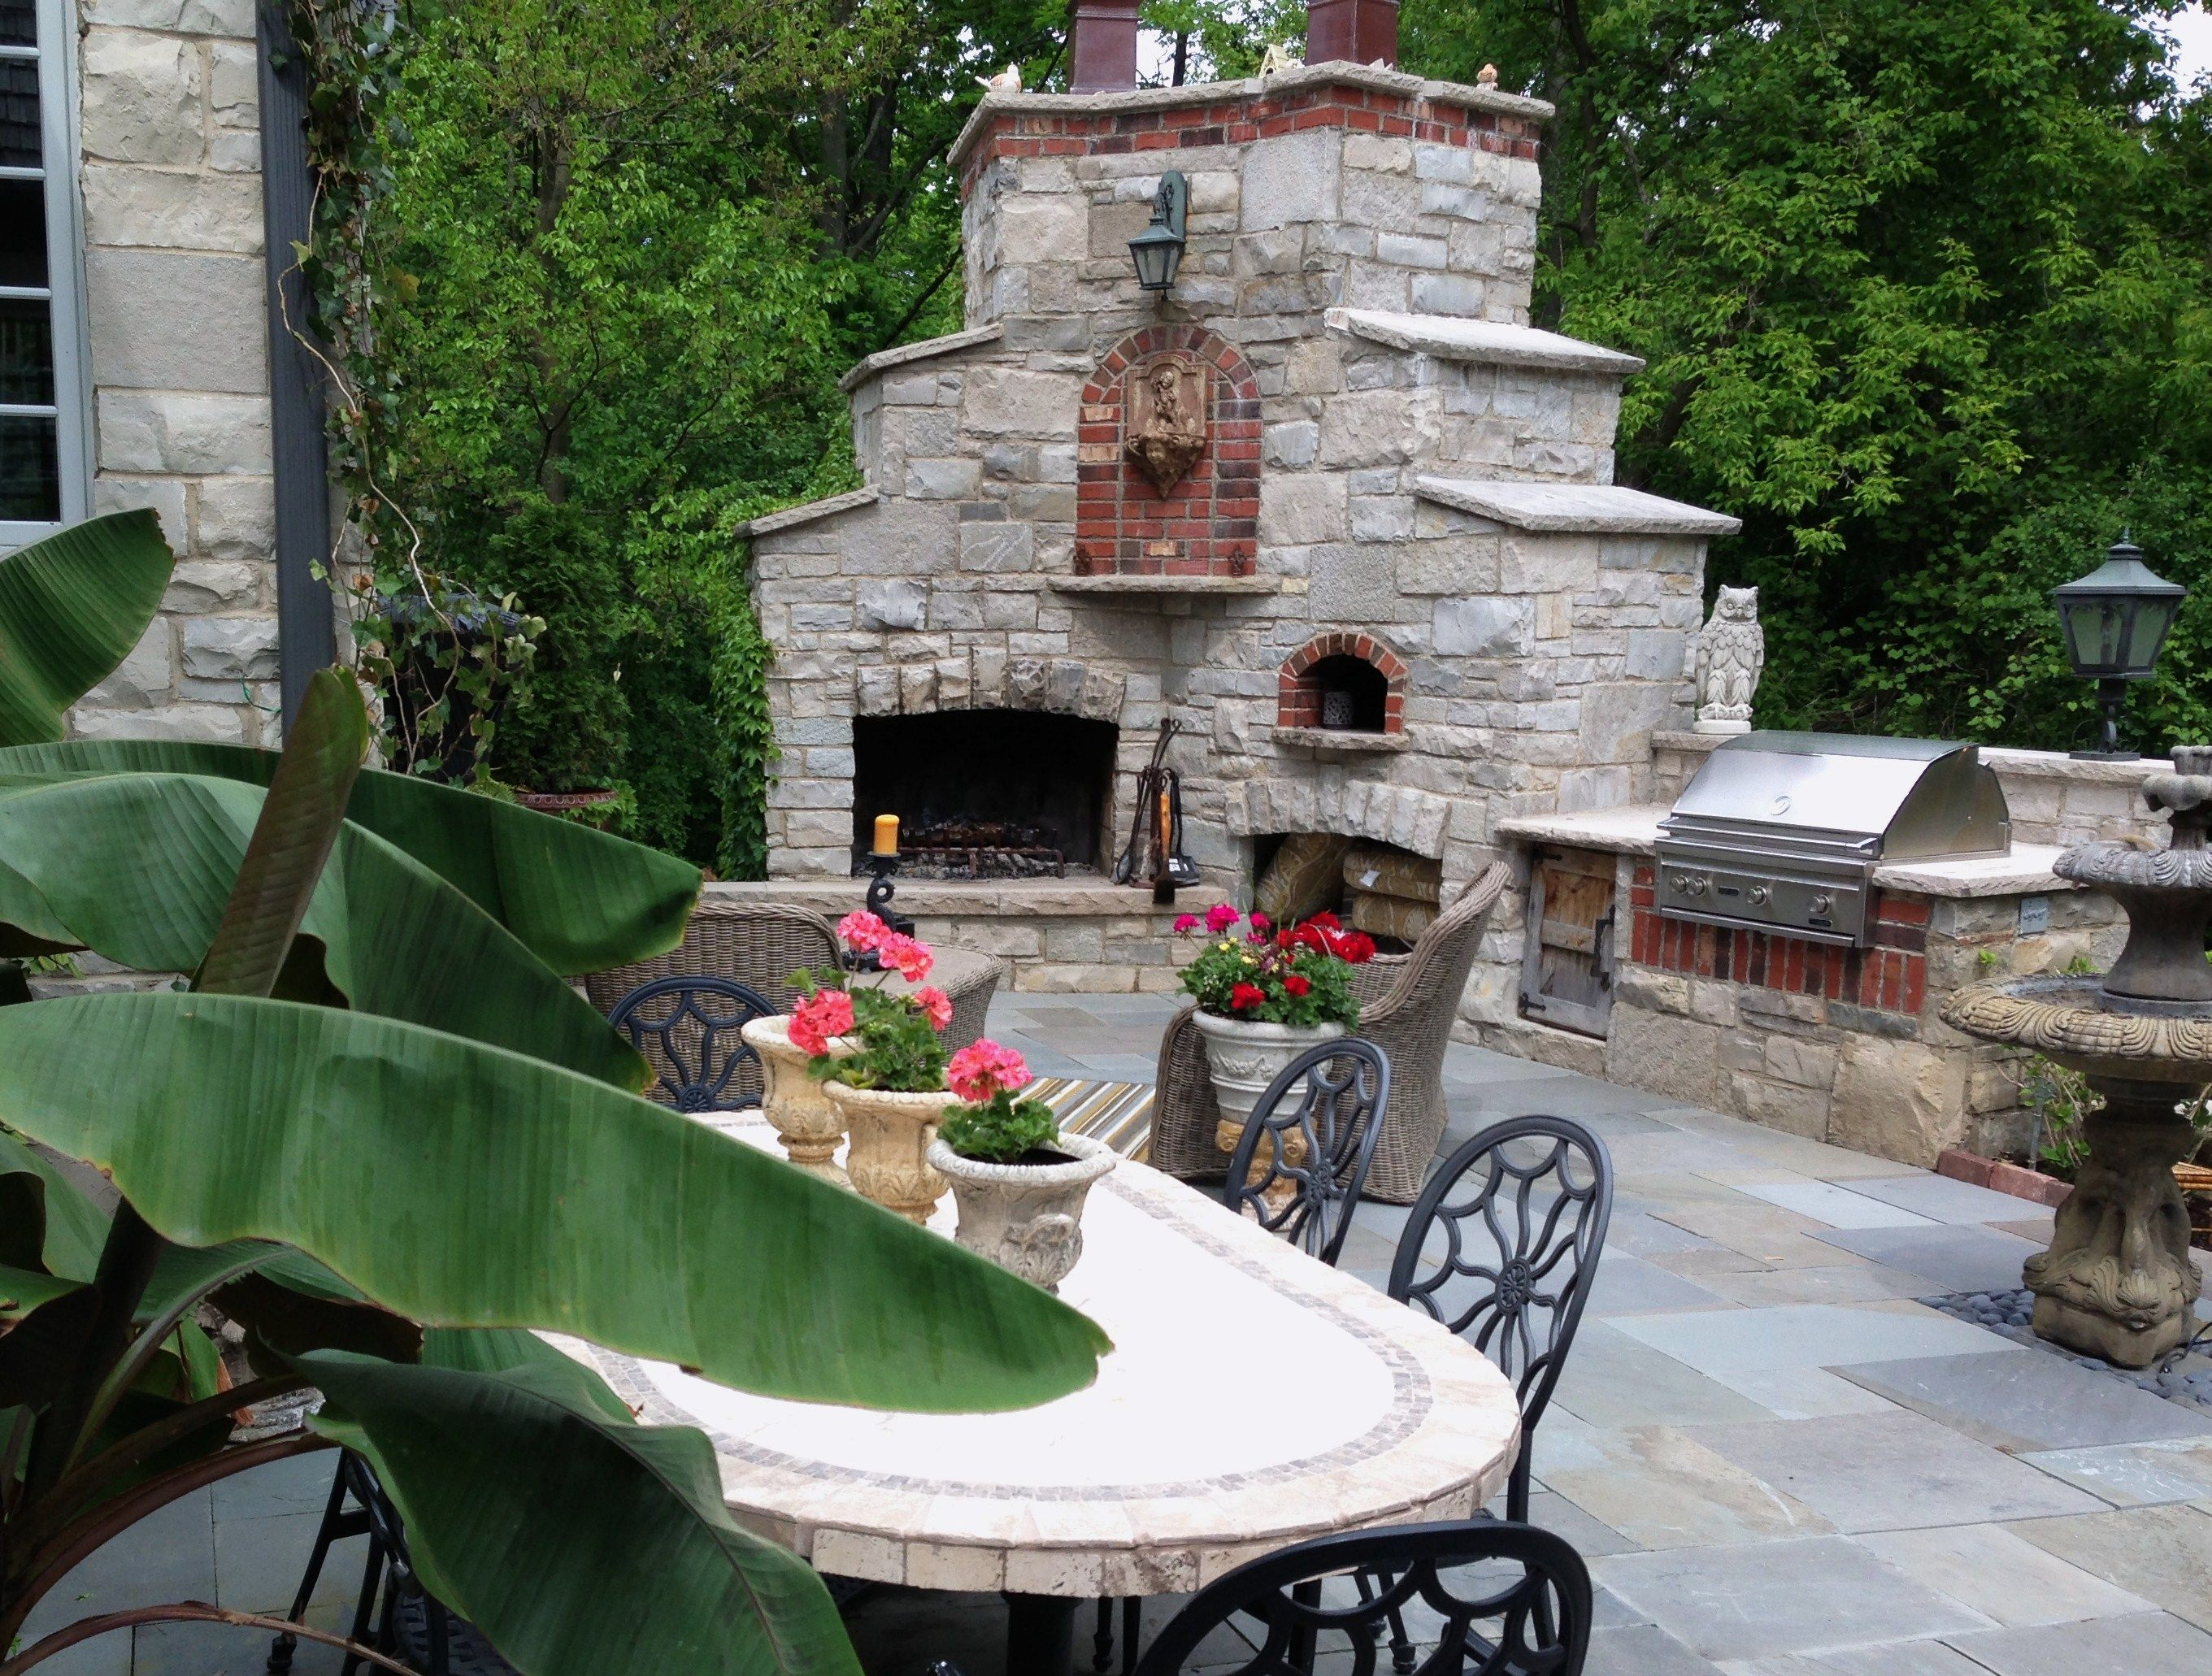 Outdoor fireplace and Pizza oven 2721—2062 BBQ